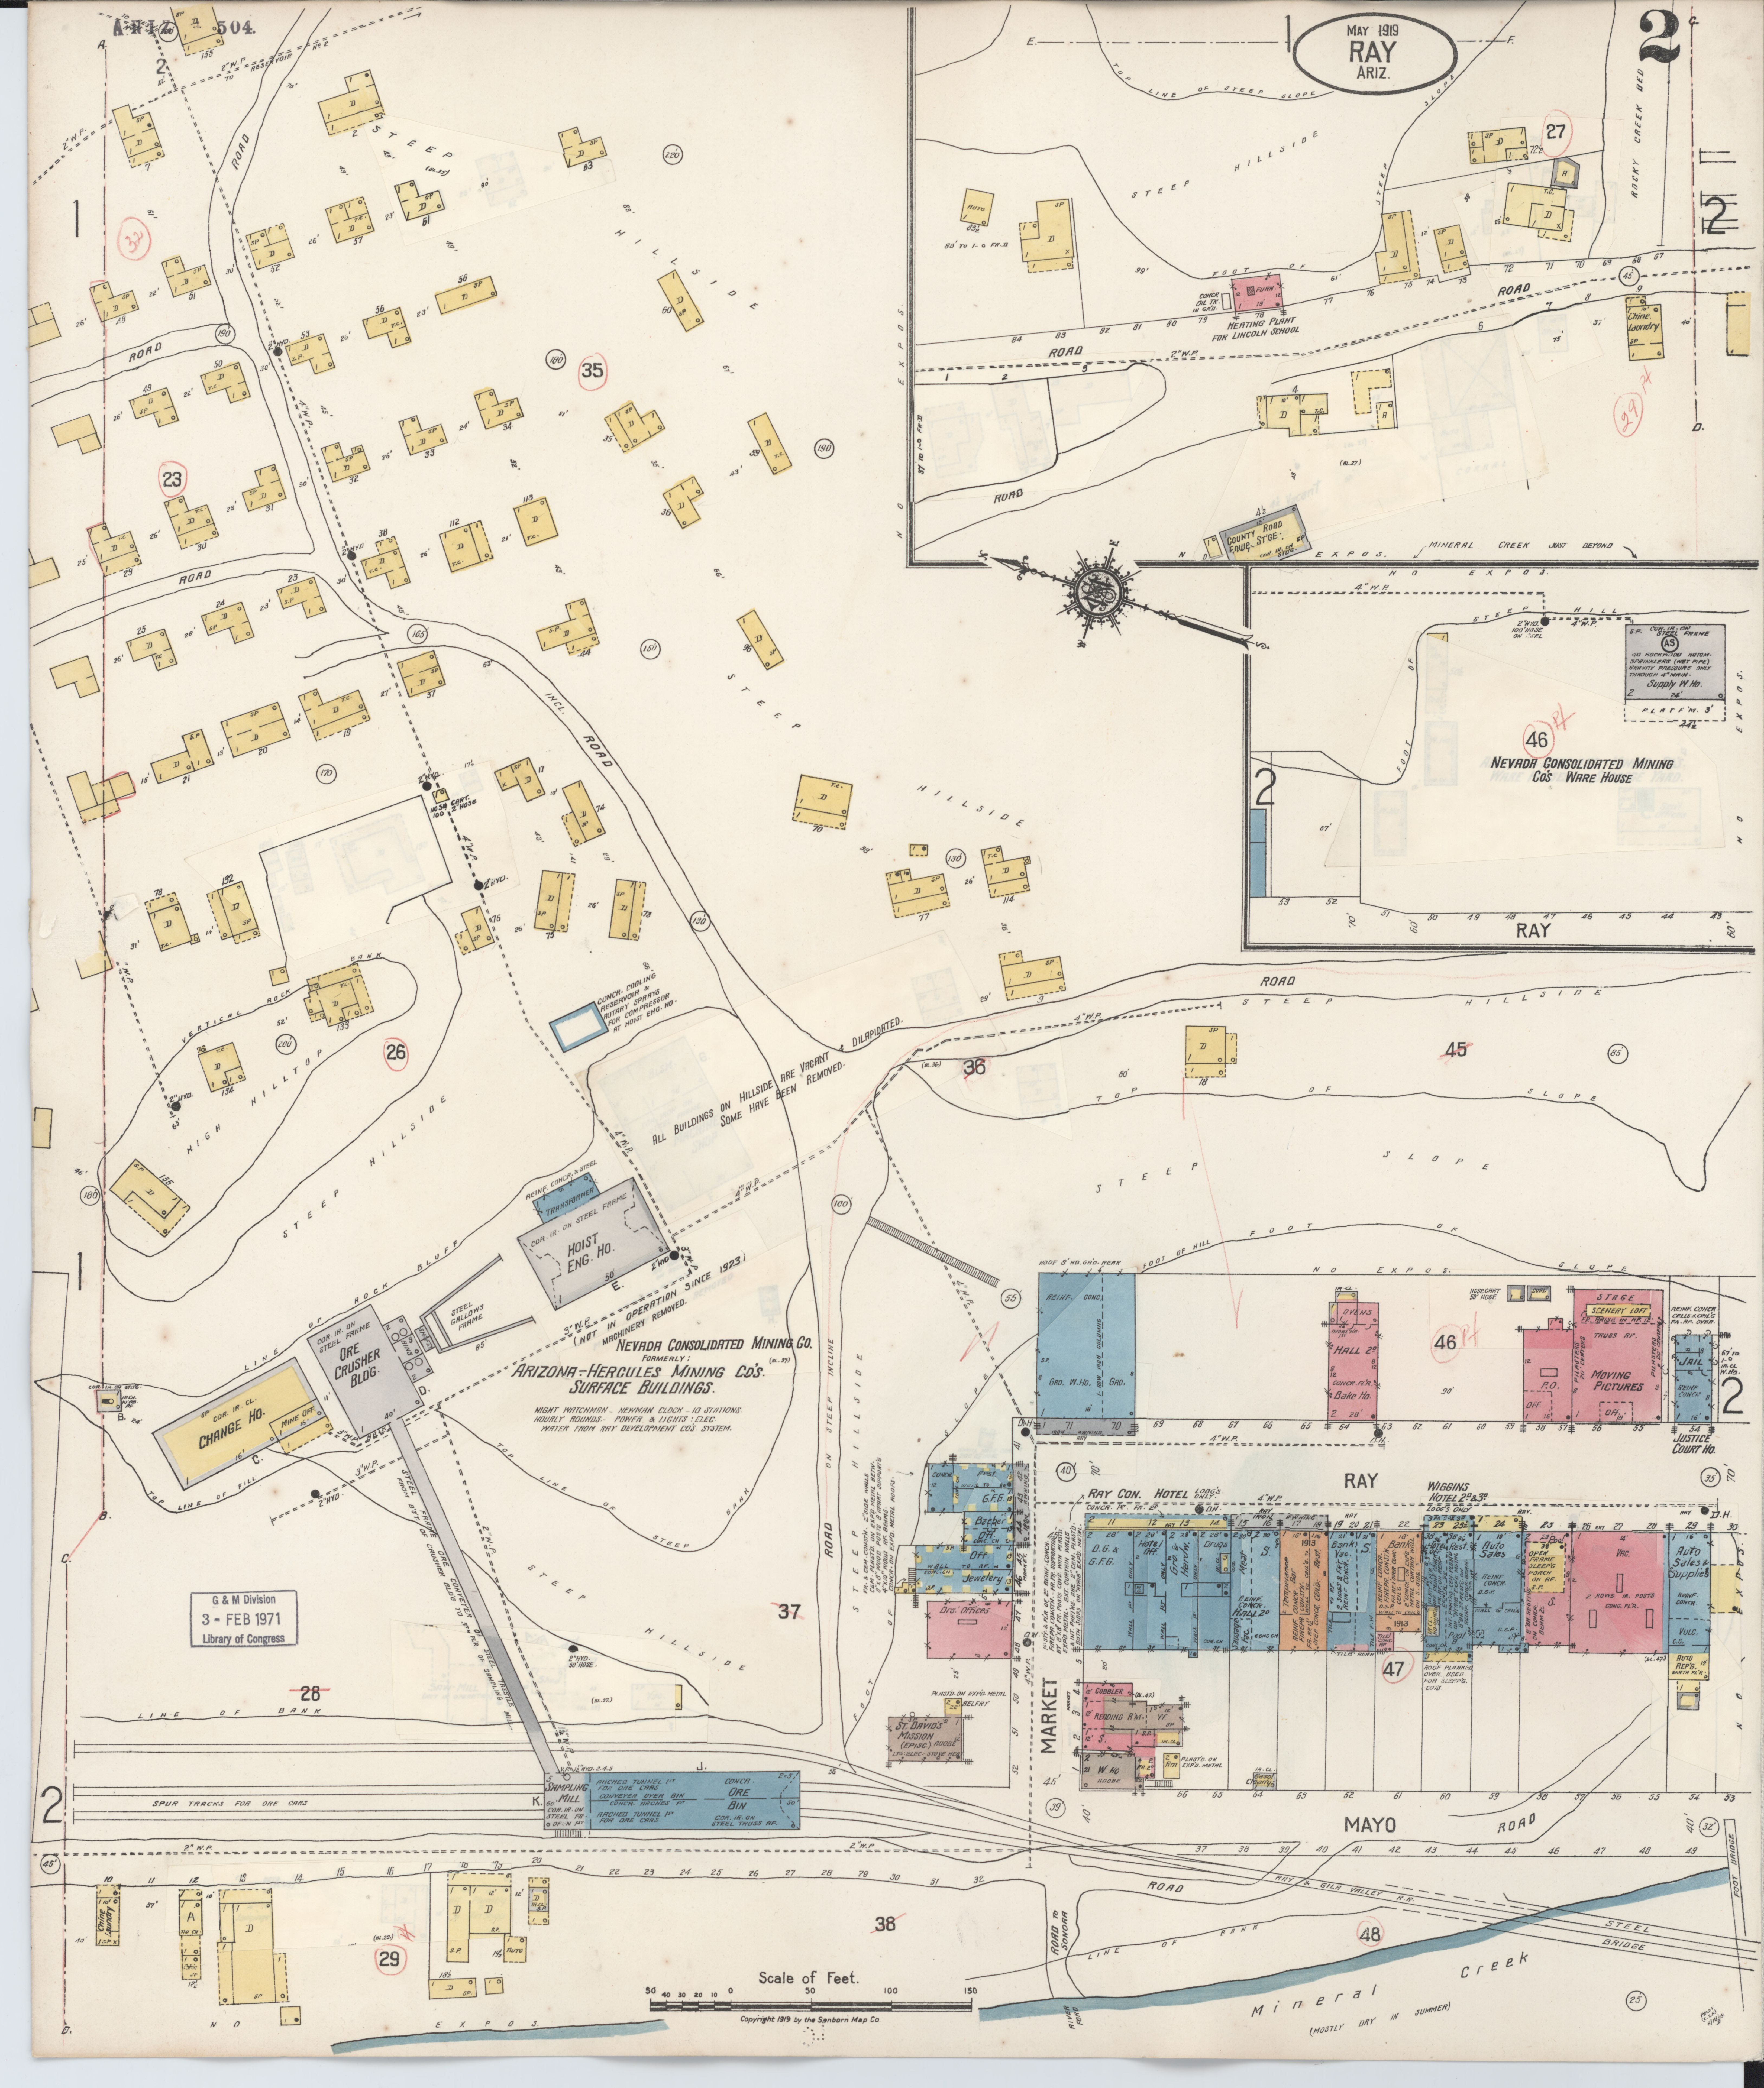 County Line 2 Fire Map.File Sanborn Fire Insurance Map From Ray Pinal County Arizona Loc